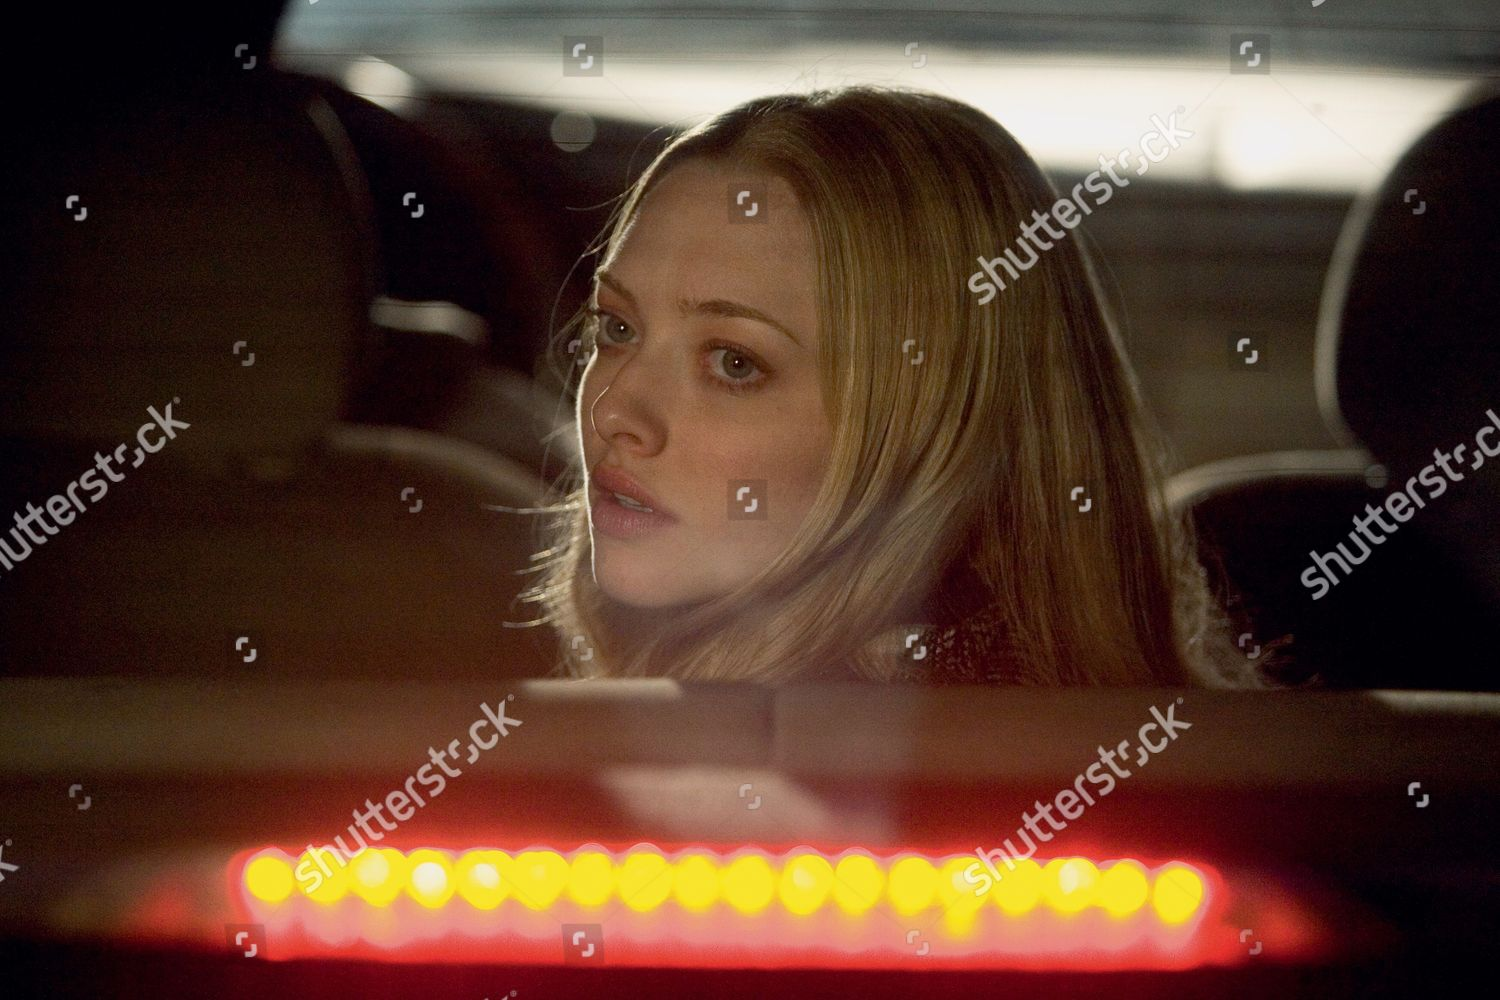 Amanda Seyfried Chloe Scene amanda seyfried editorial stock photo - stock image